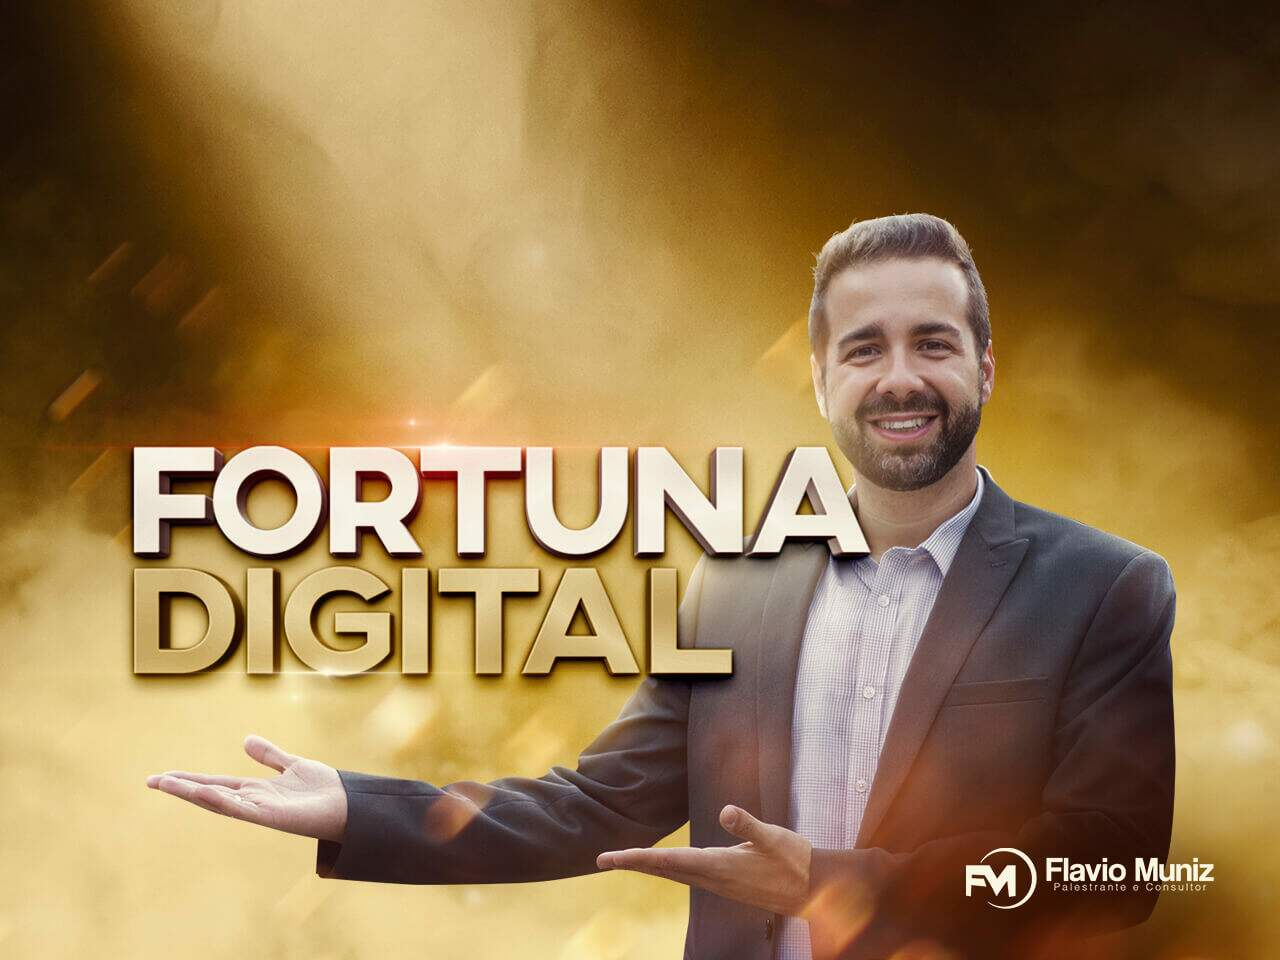 fortuna digital